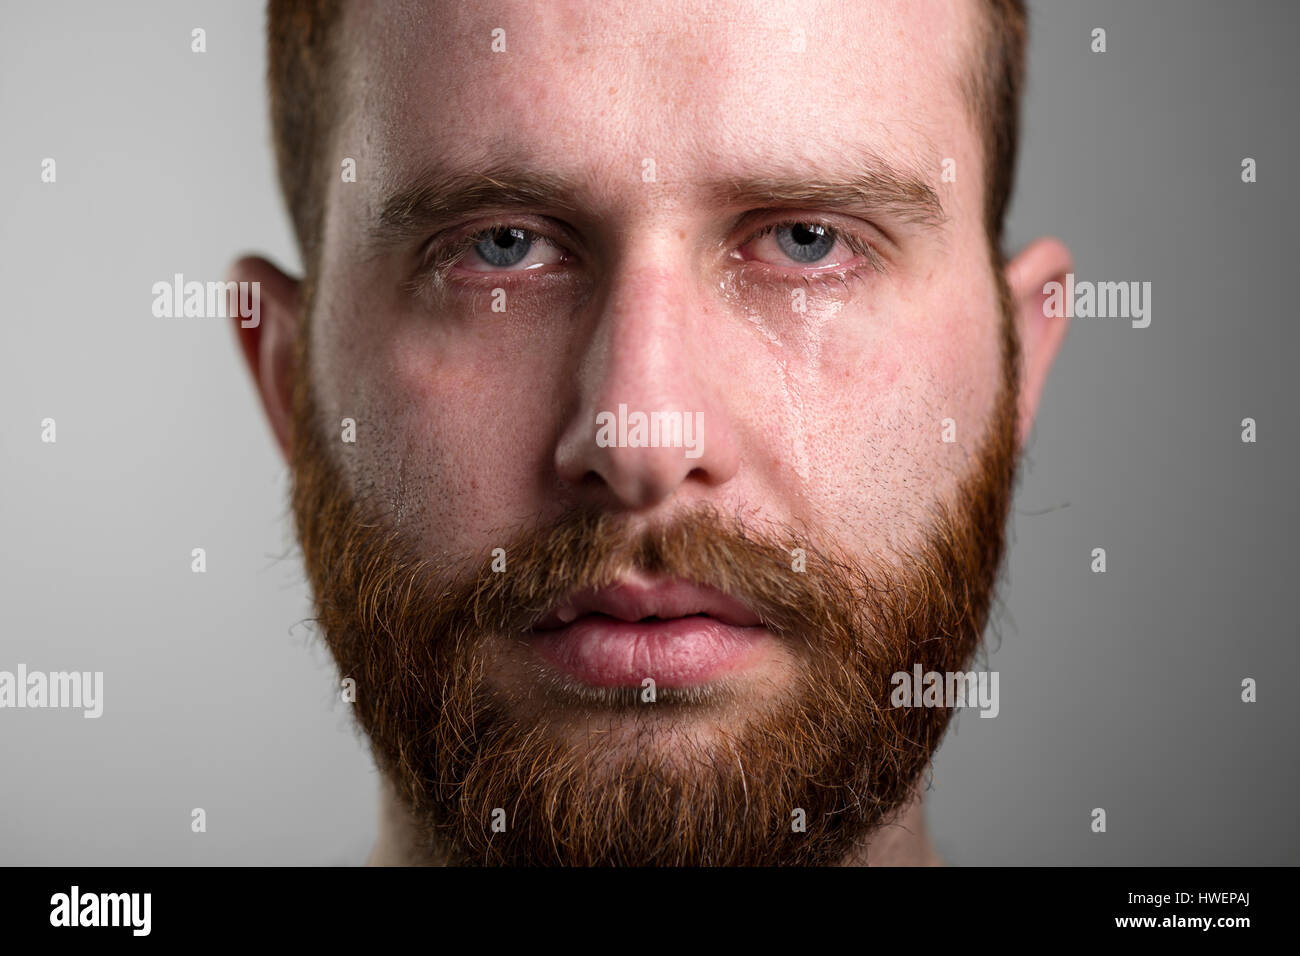 Close Up of a Crying Man with Red Beard - Stock Image